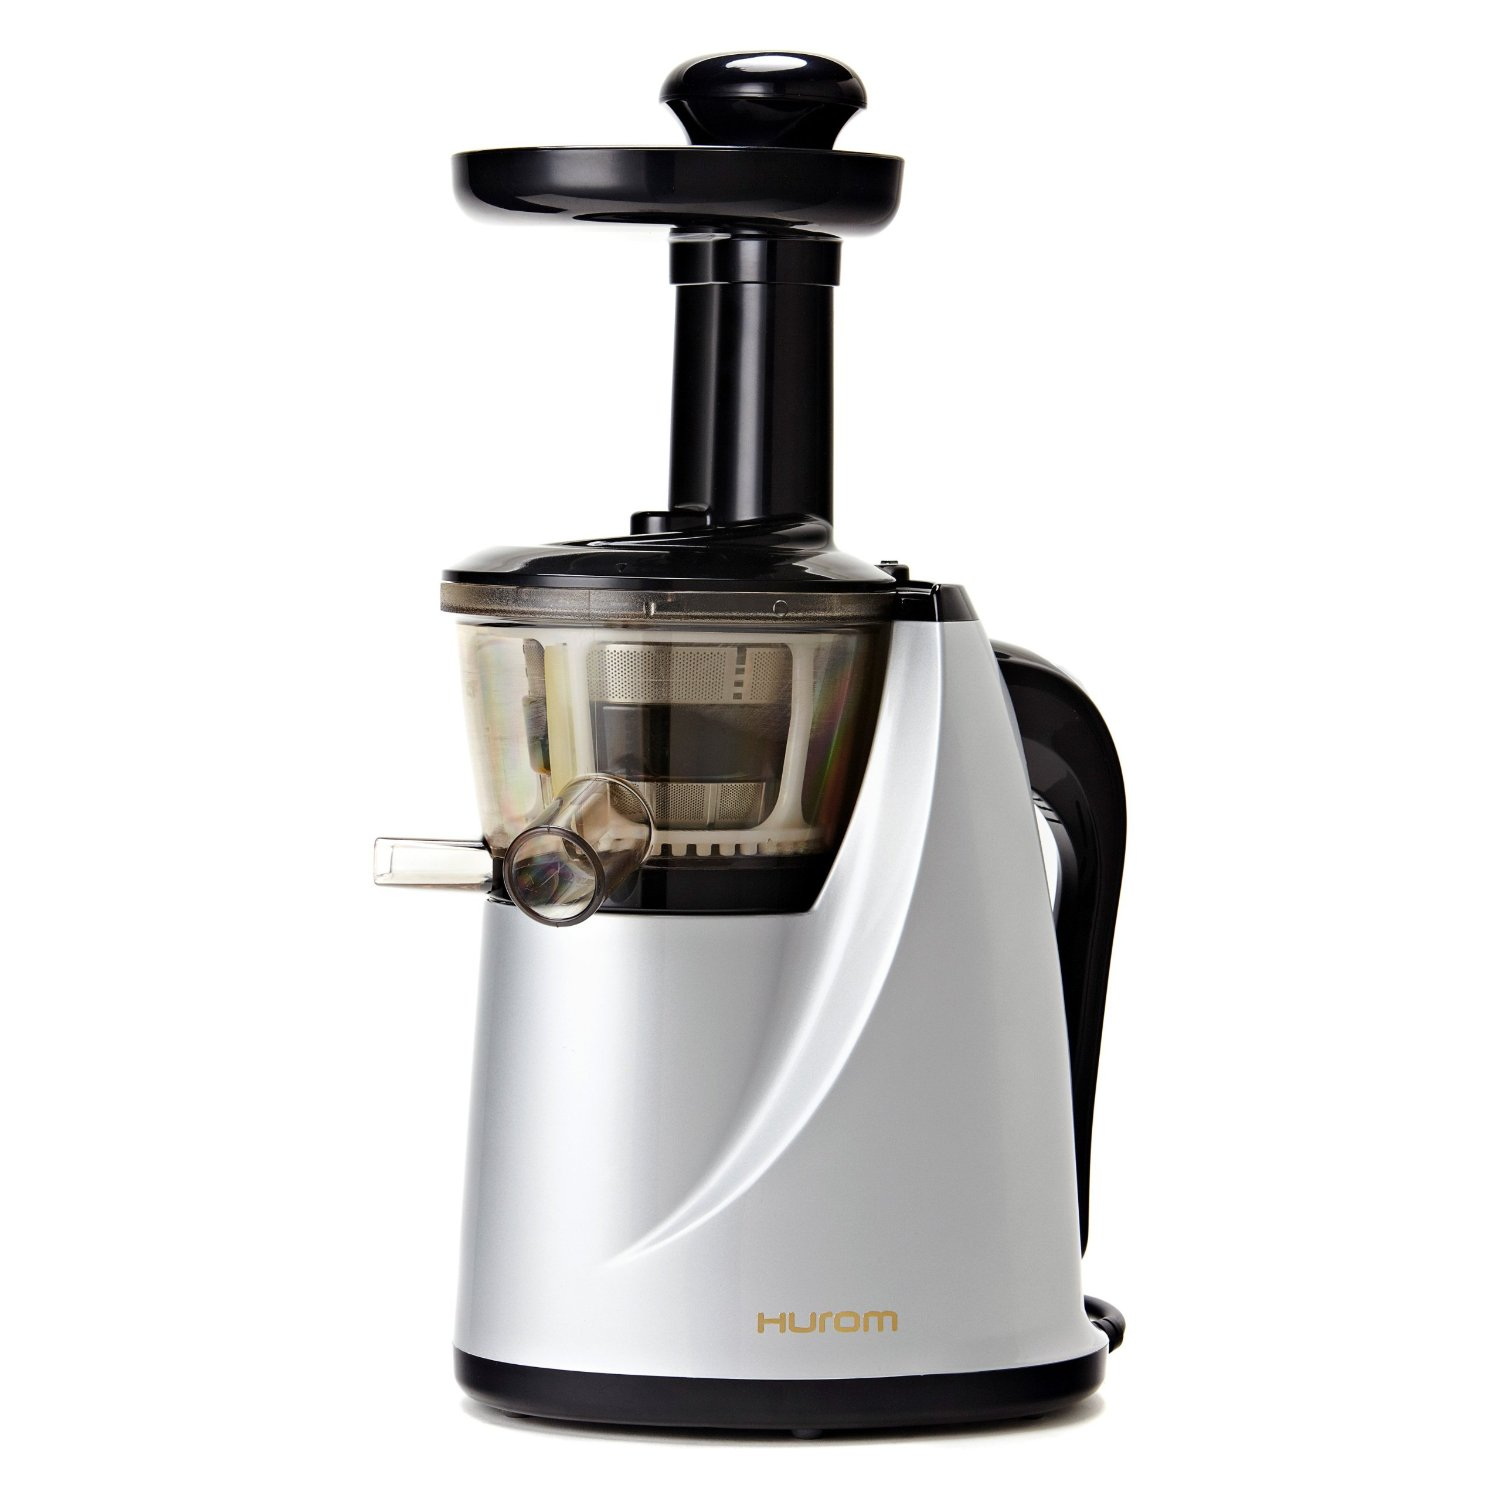 Hurom Slow Juicer Cyprus : Hurom HU-100 Masticating Slow Juicer Review - Best Cold Press Juicers